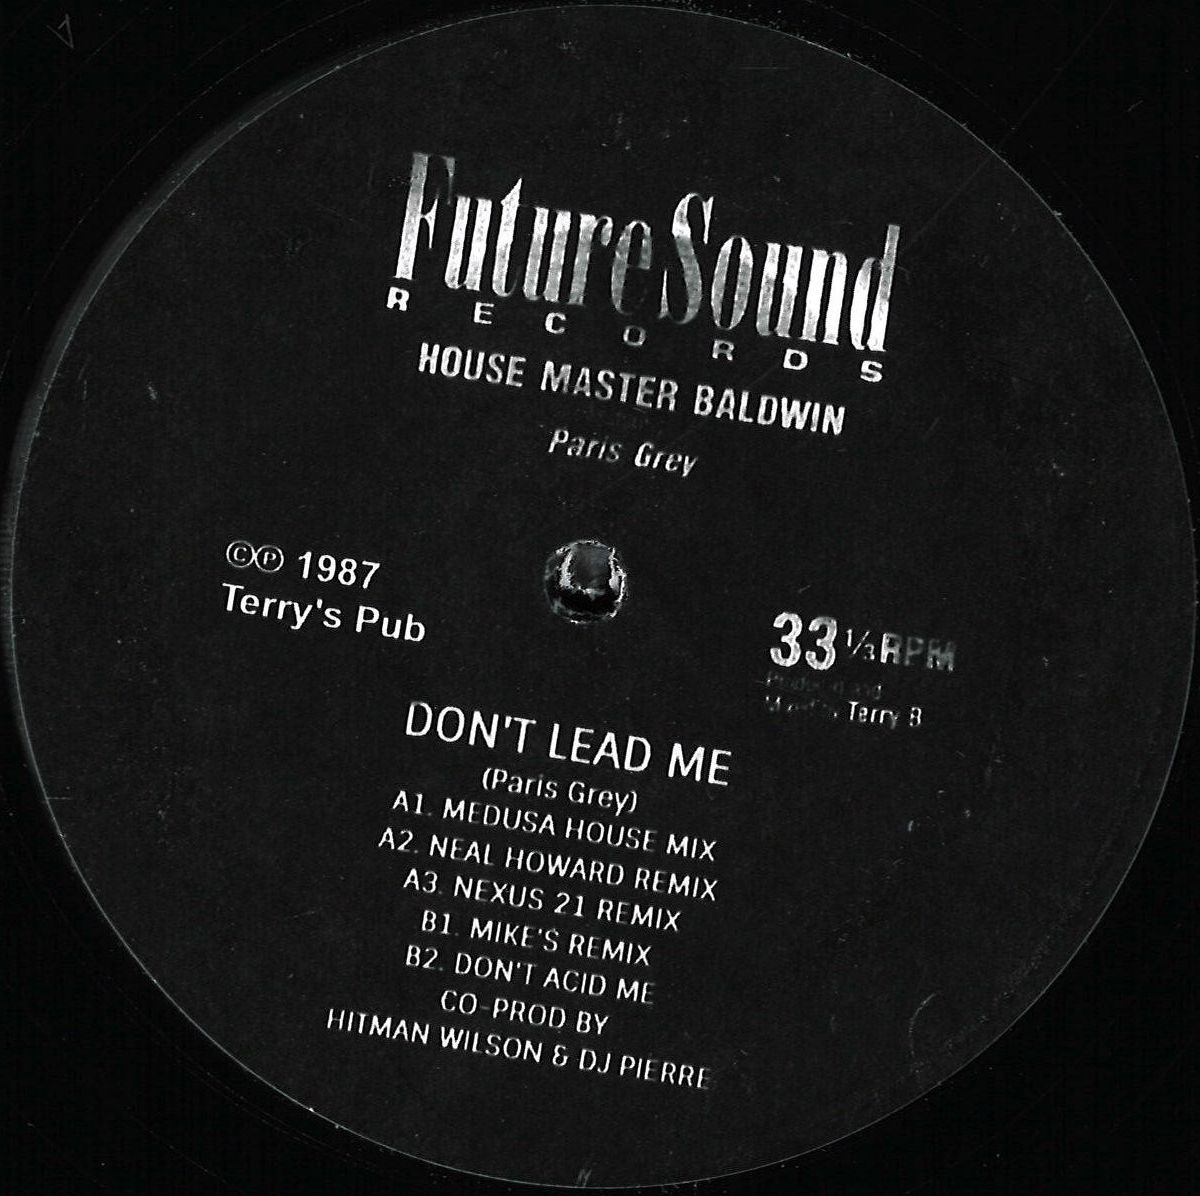 House Master Baldwin - Don't Lead Me 12